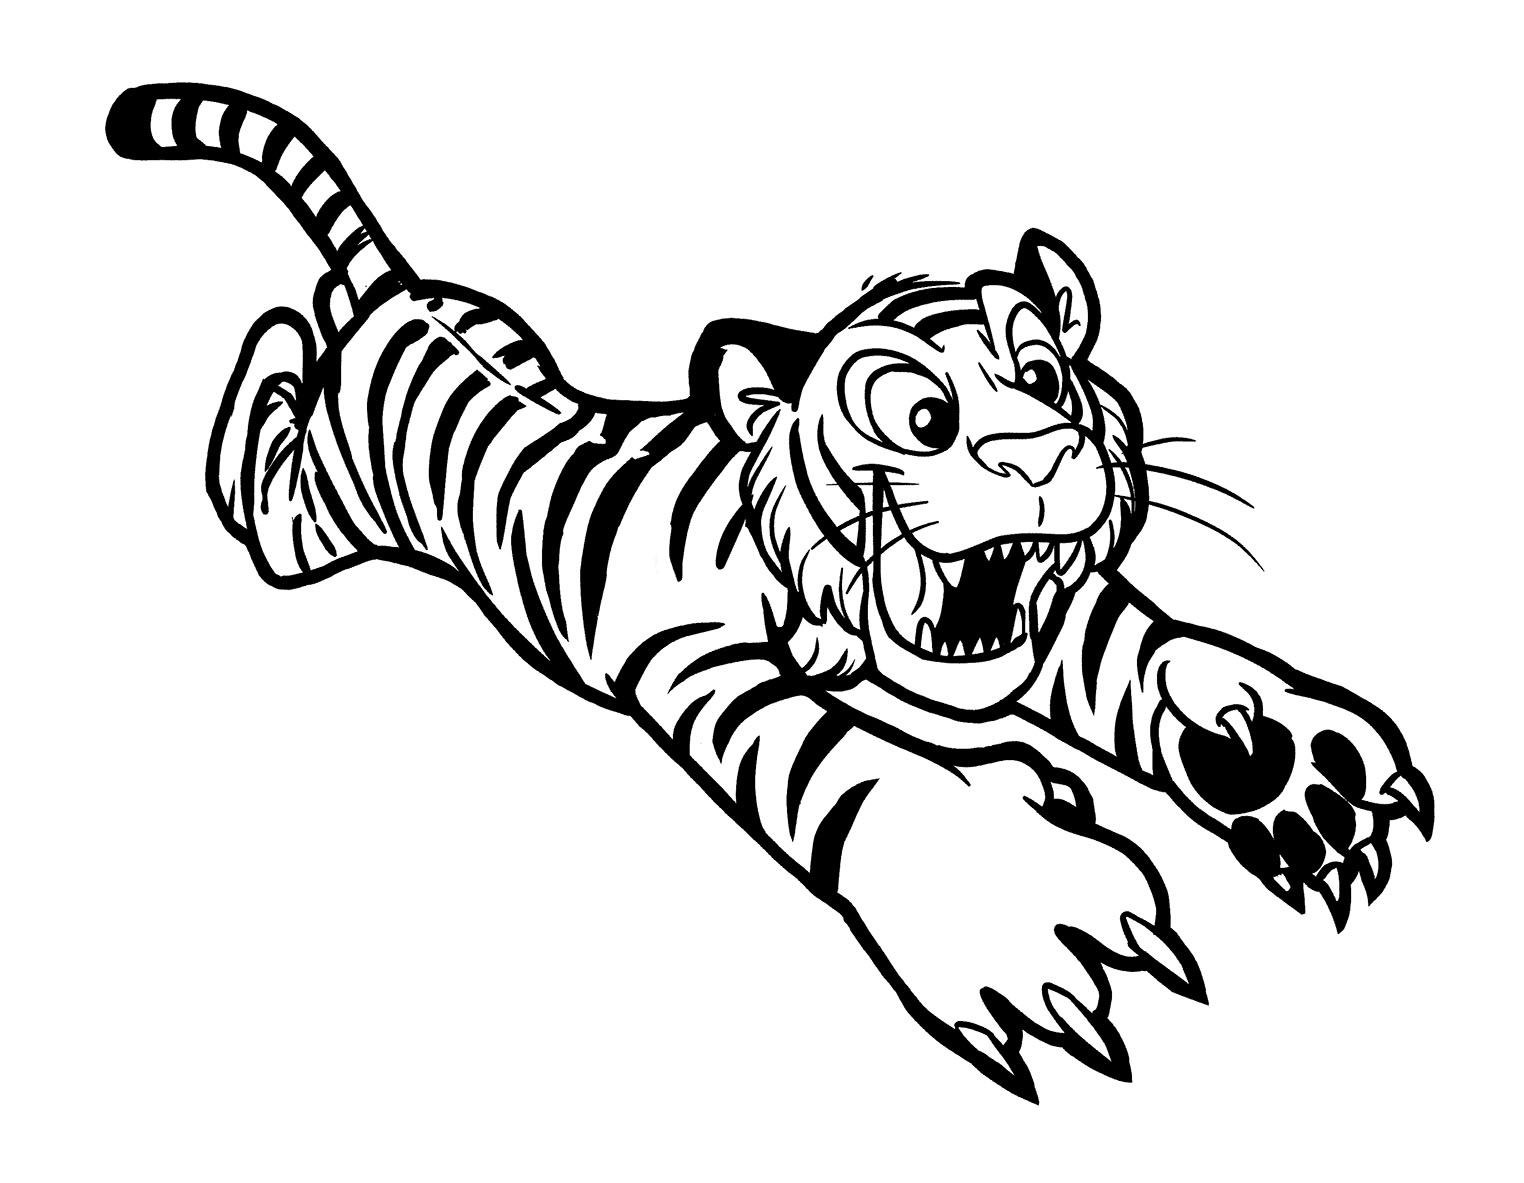 Free Tigers coloring page to print and color, for kids